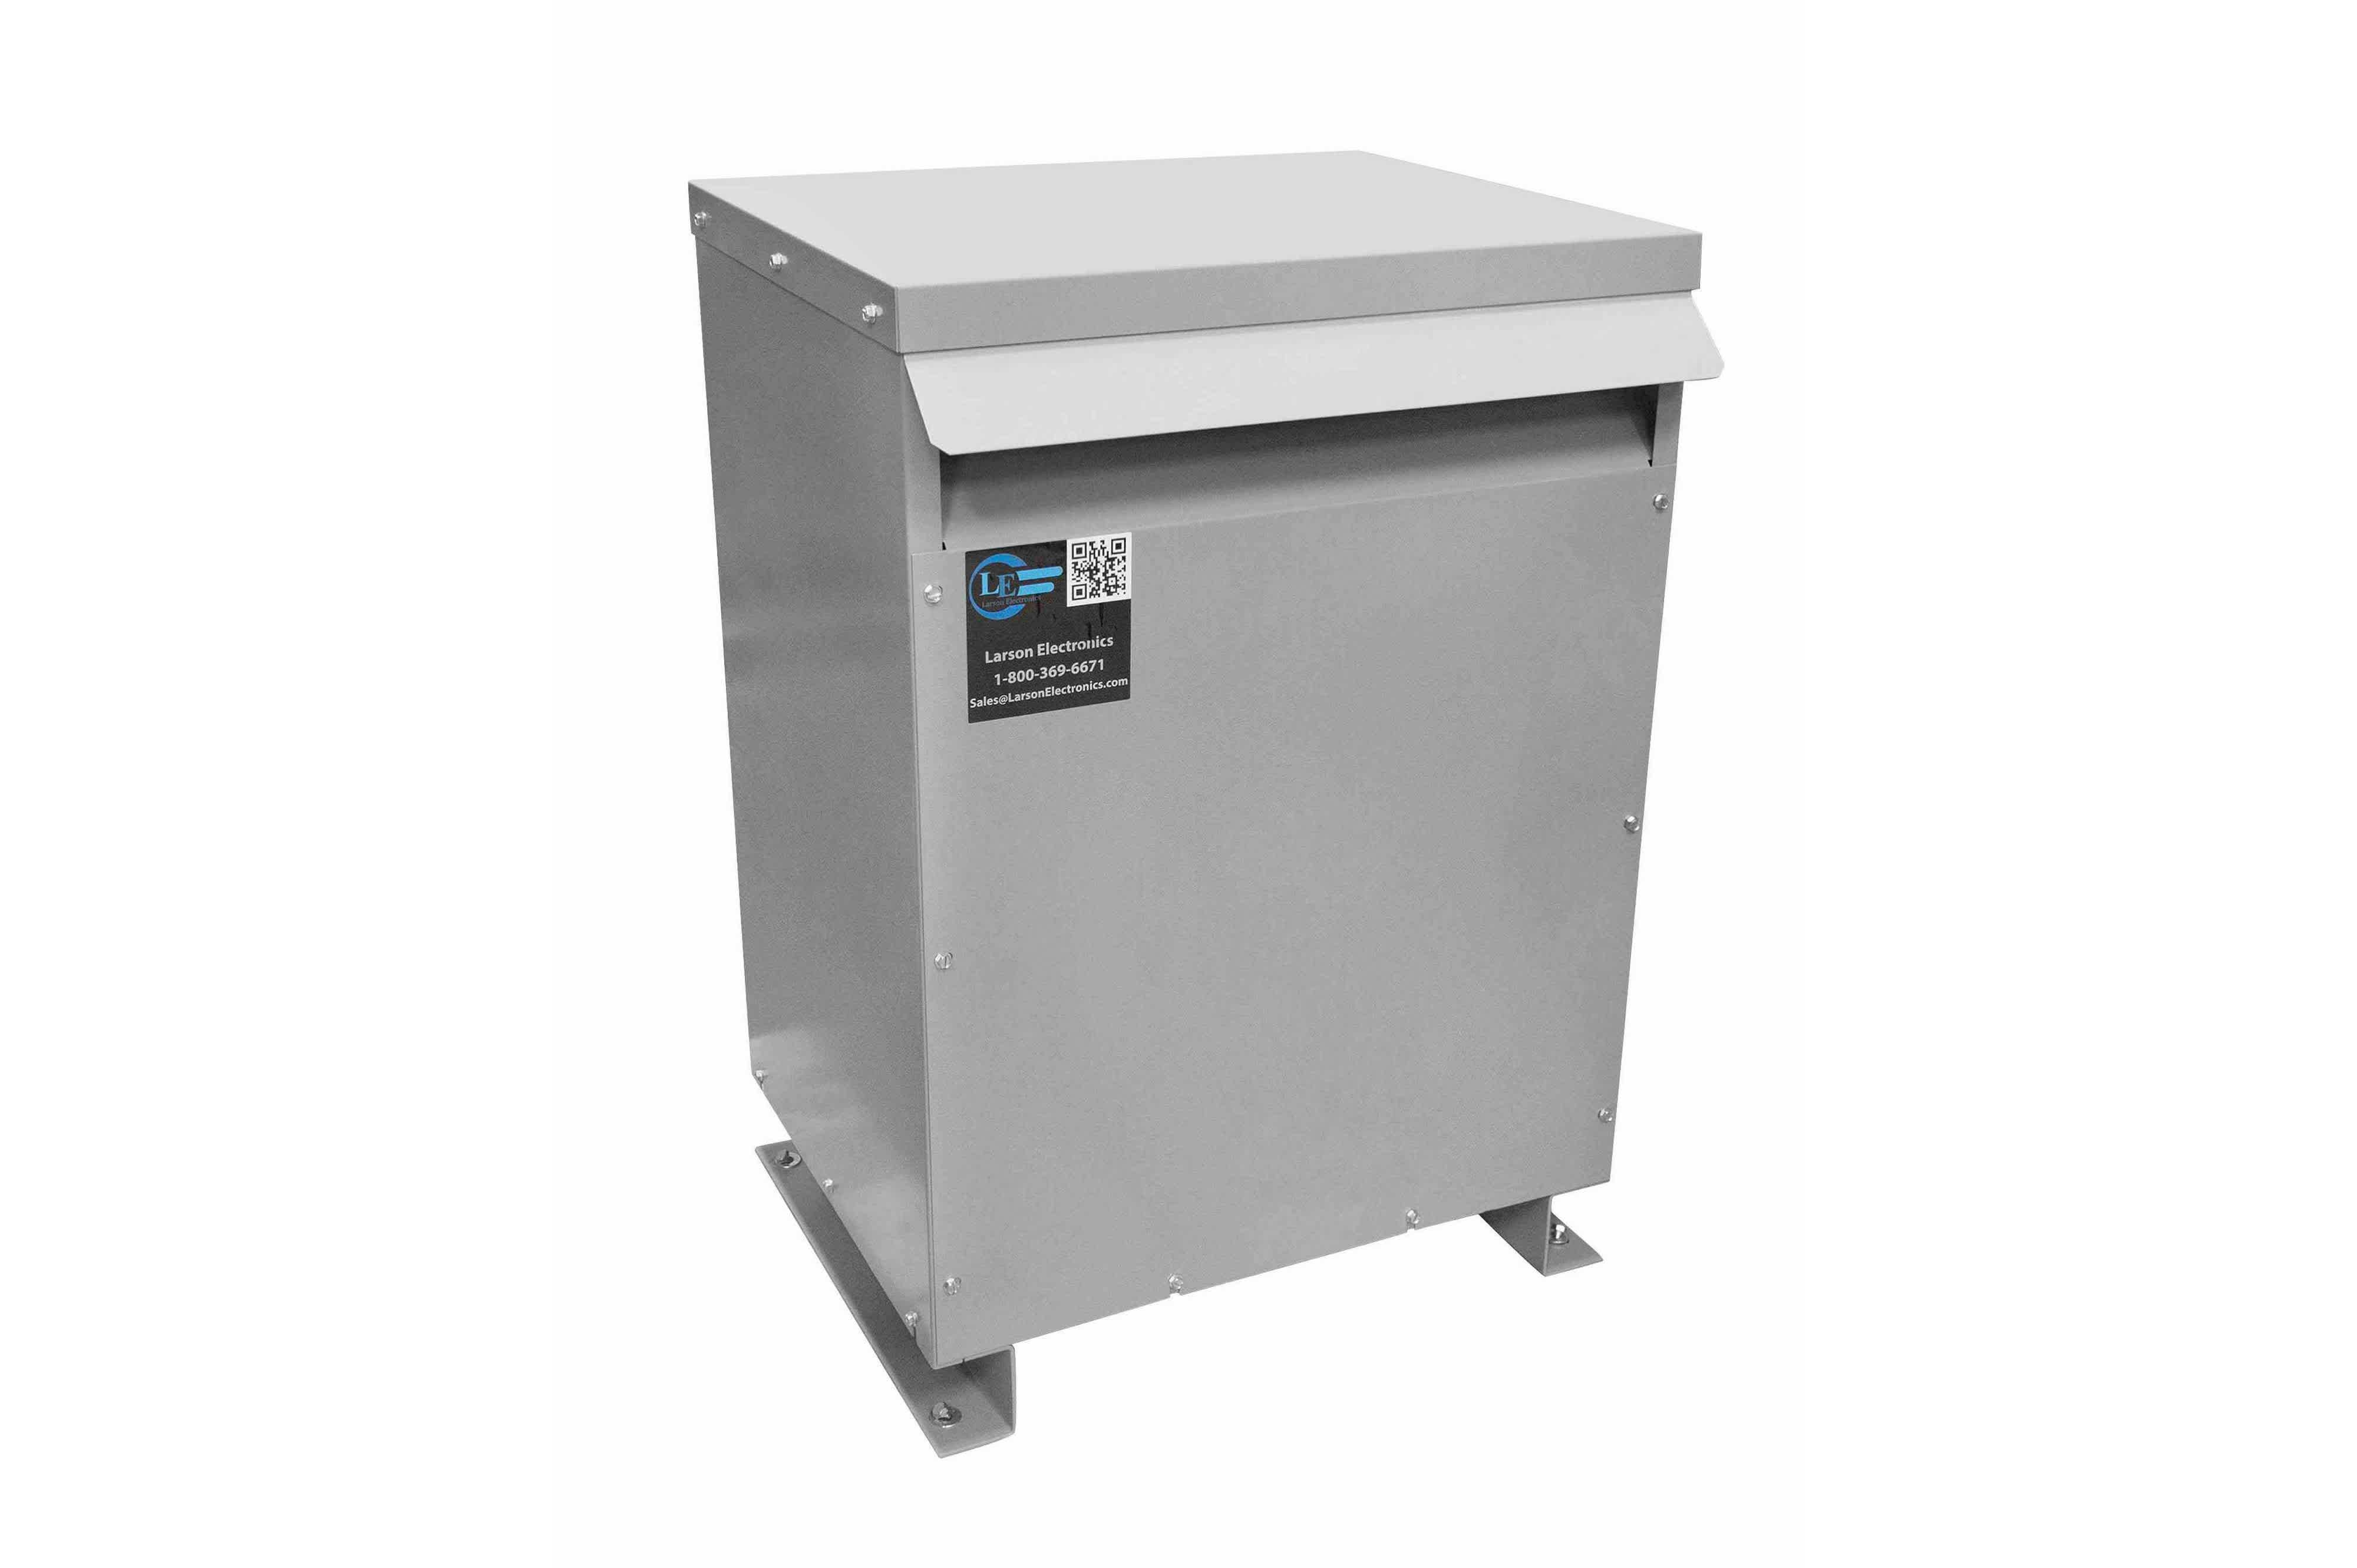 225 kVA 3PH DOE Transformer, 480V Delta Primary, 208Y/120 Wye-N Secondary, N3R, Ventilated, 60 Hz